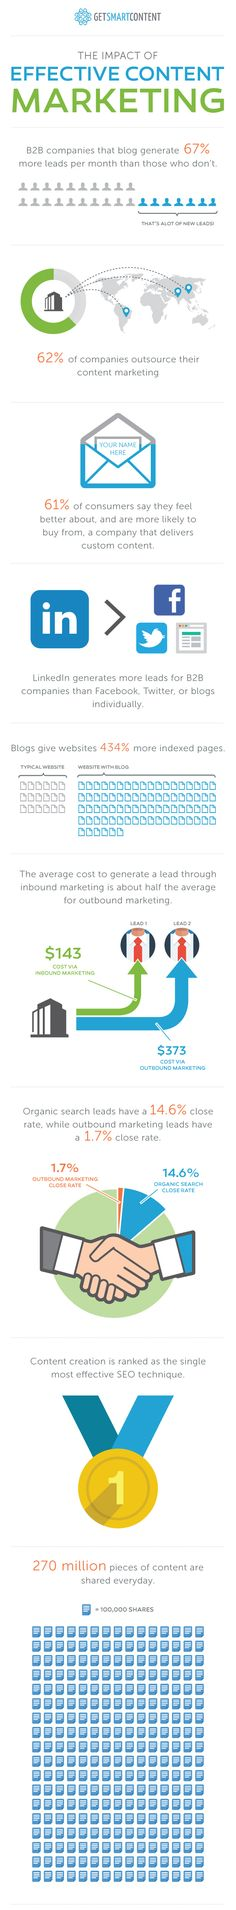 How Effective is Your Content Marketing? [Infographic]